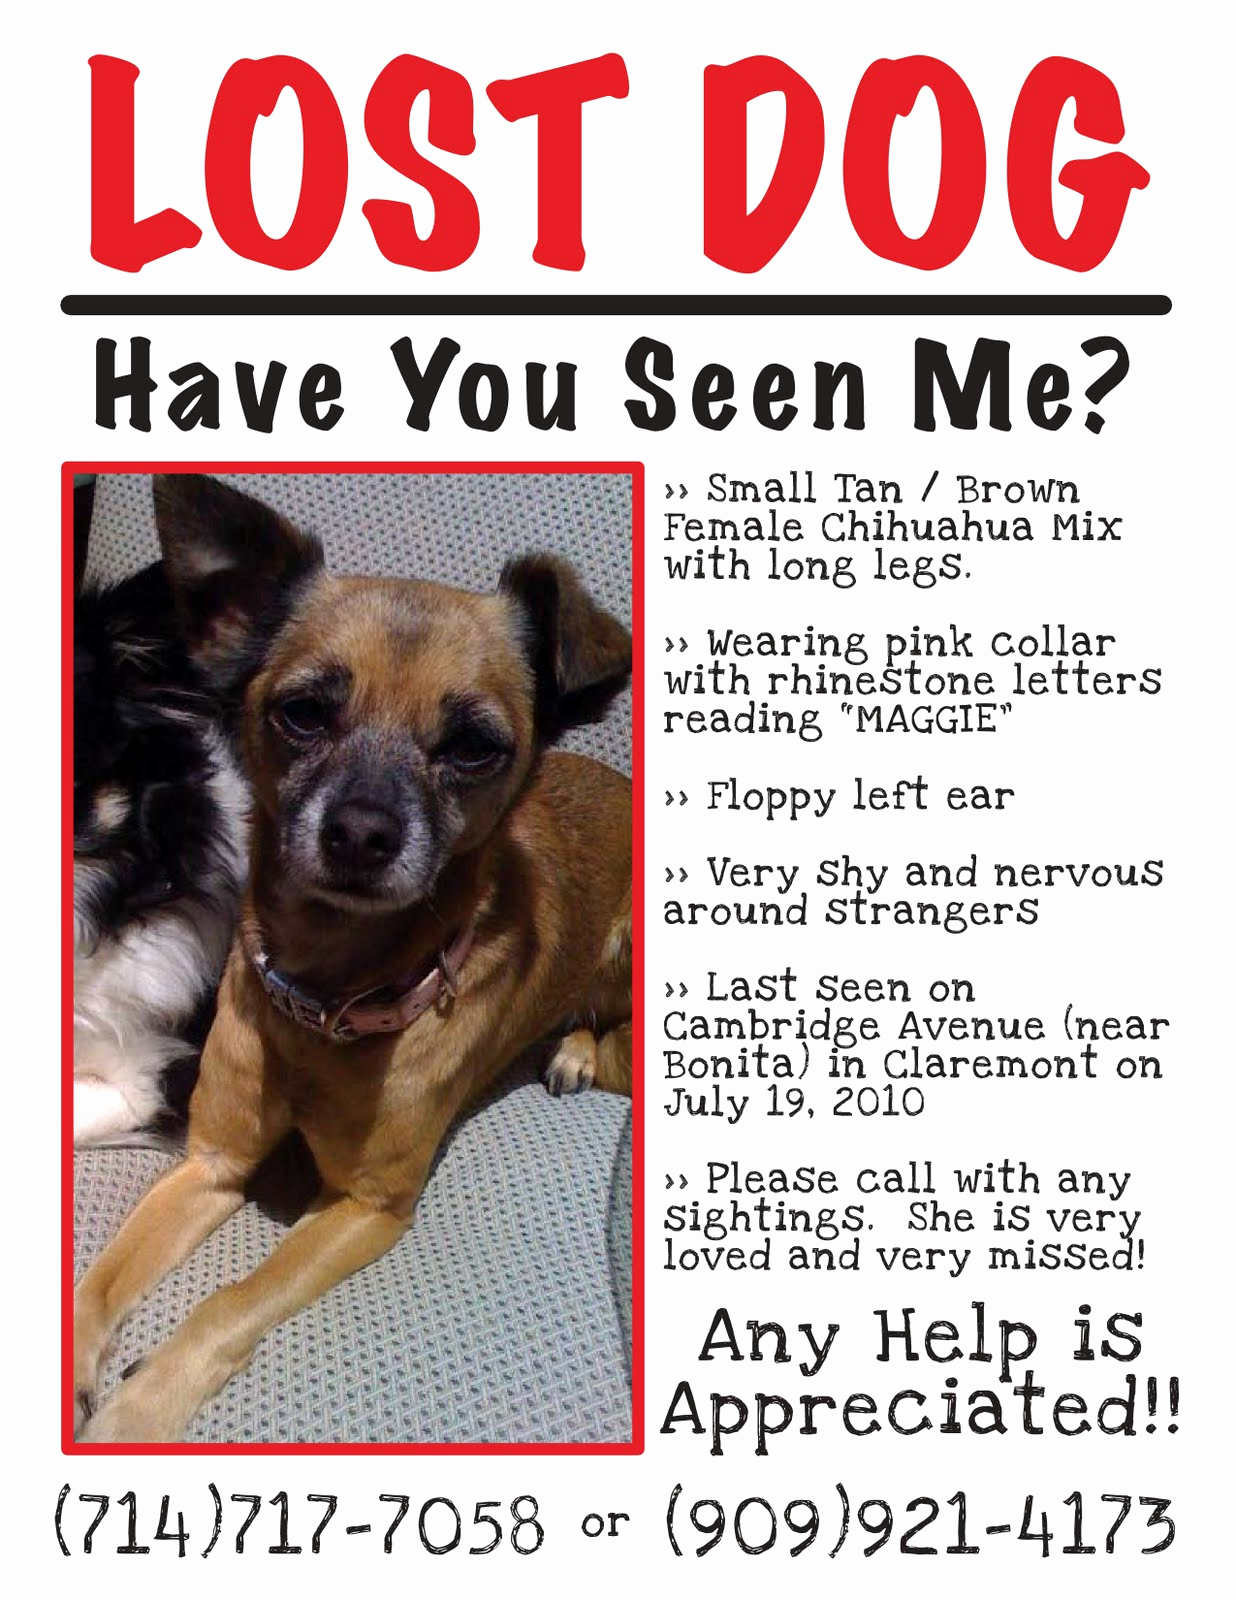 Missing Dog Flyer Template Awesome Claremont Insider Lost Dog